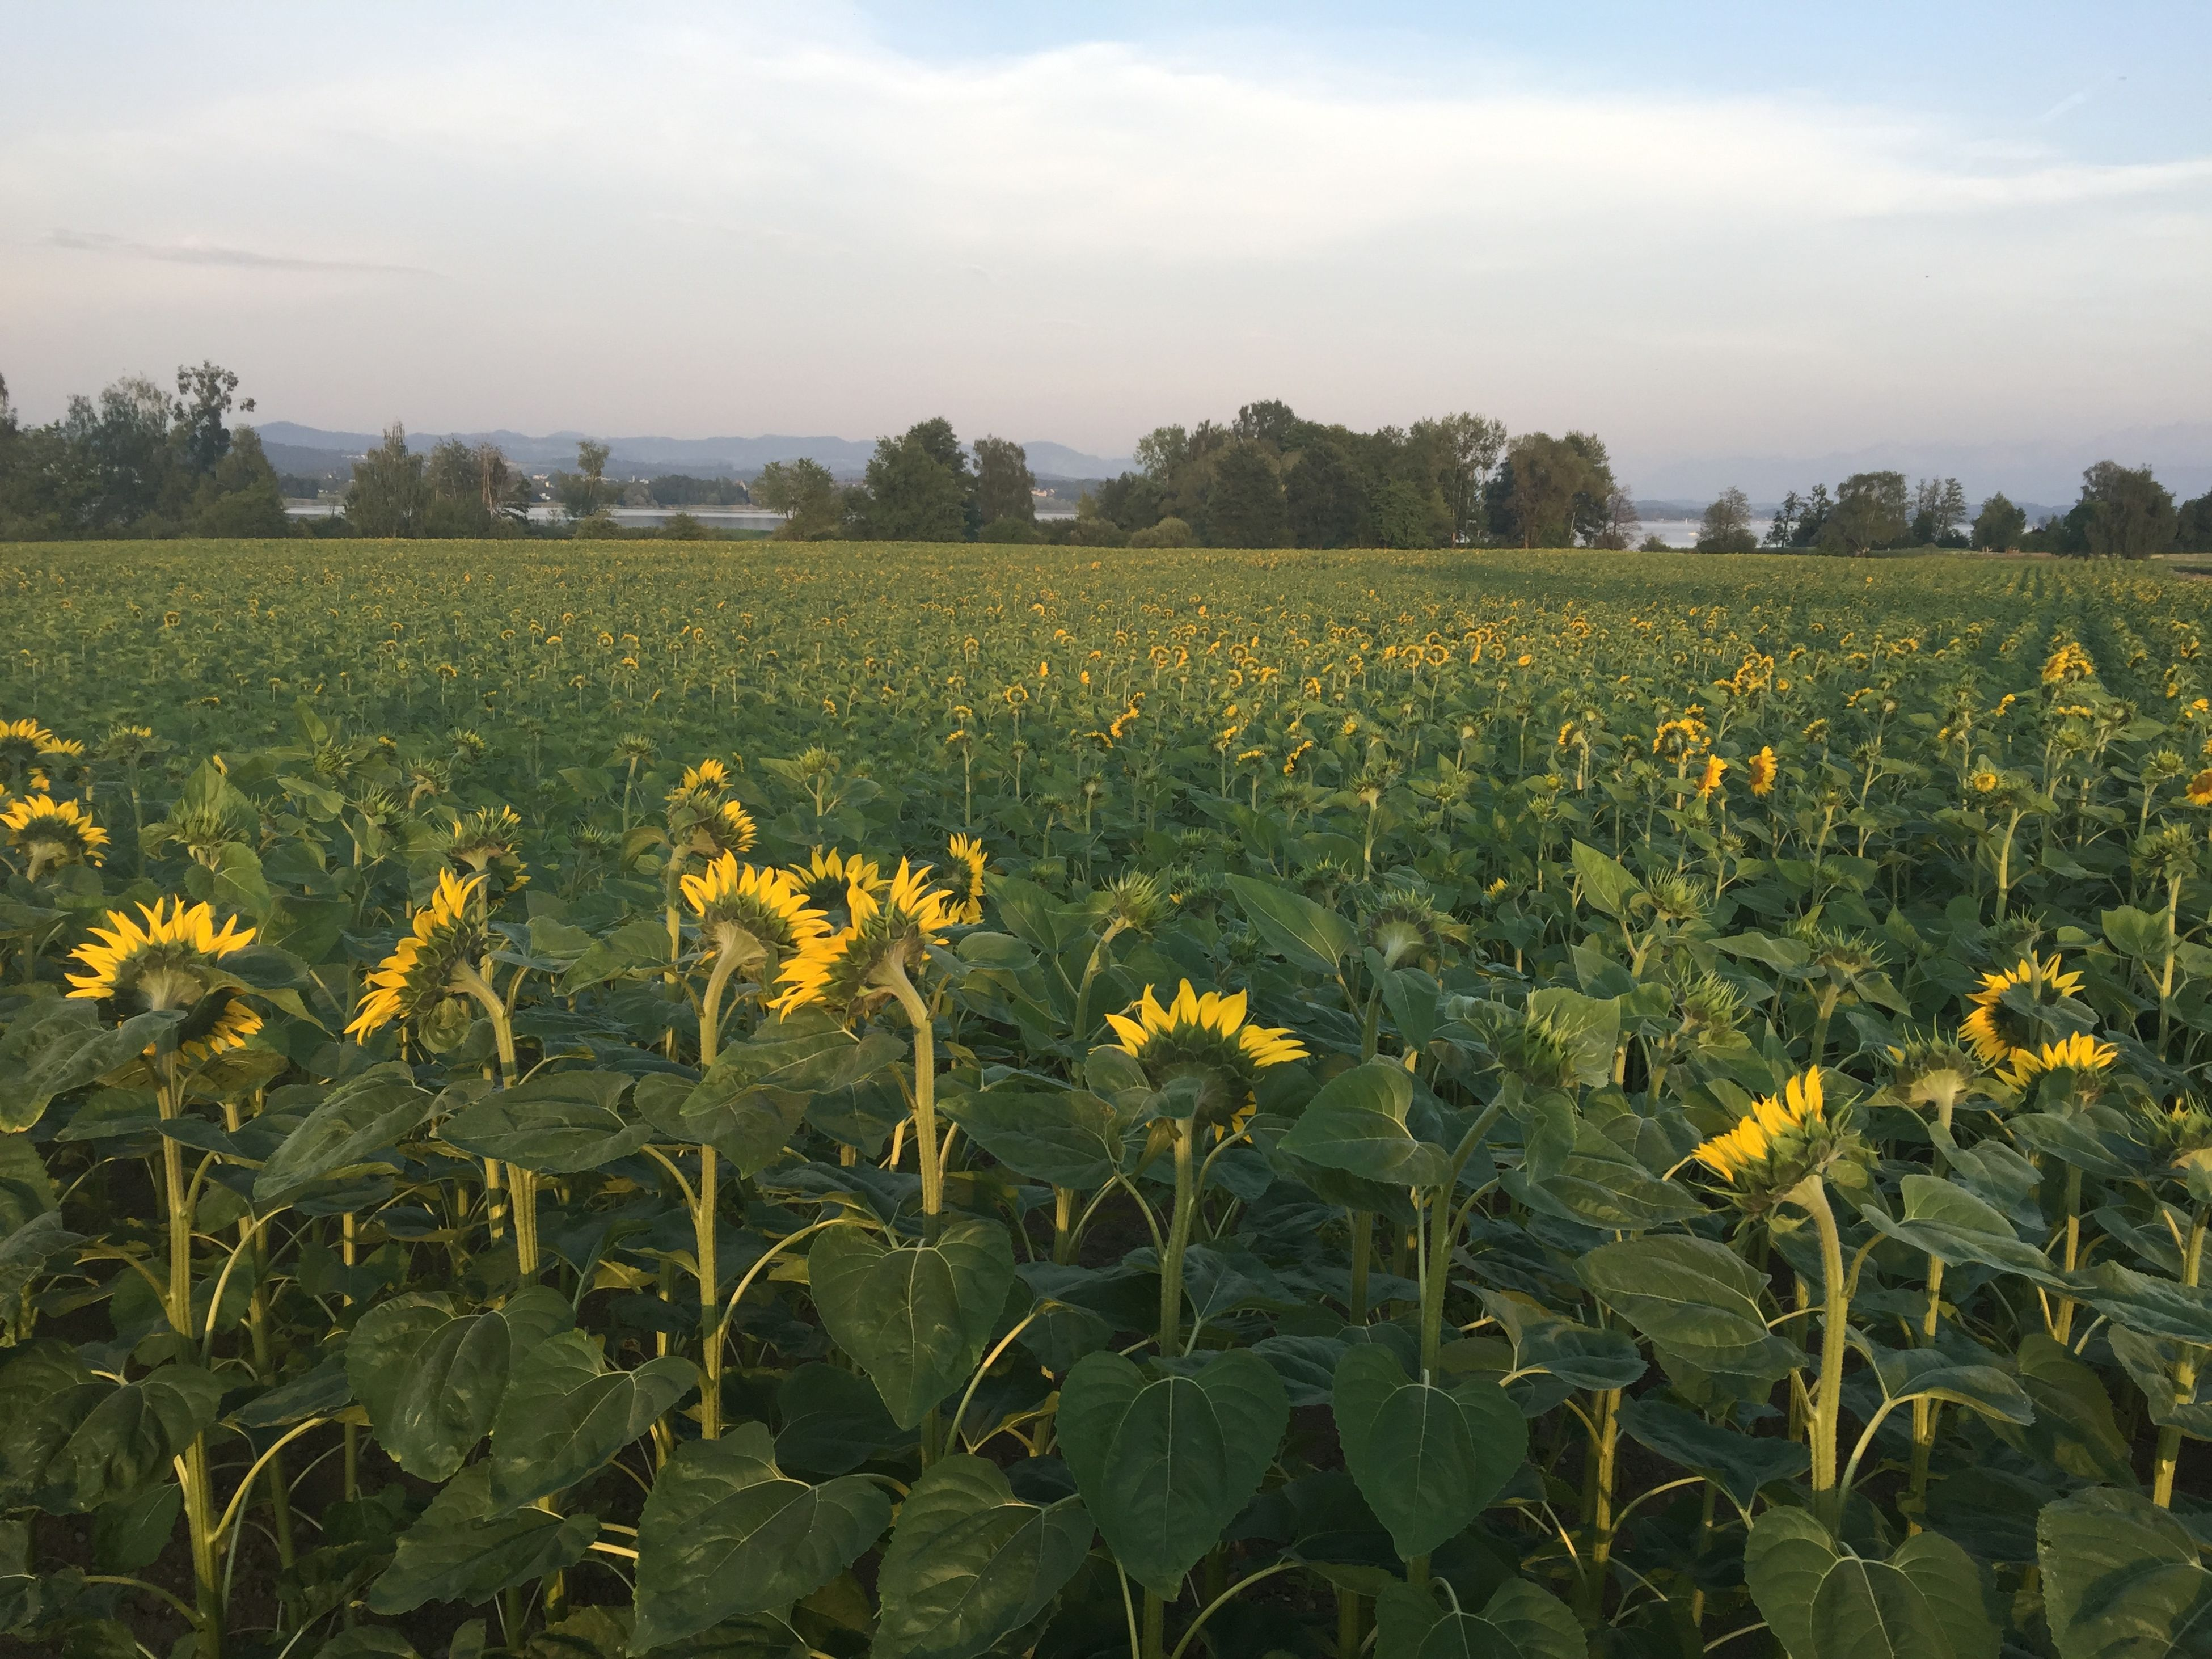 flower, yellow, growth, field, freshness, beauty in nature, rural scene, agriculture, nature, sky, landscape, fragility, farm, plant, tranquil scene, tranquility, blooming, oilseed rape, crop, scenics